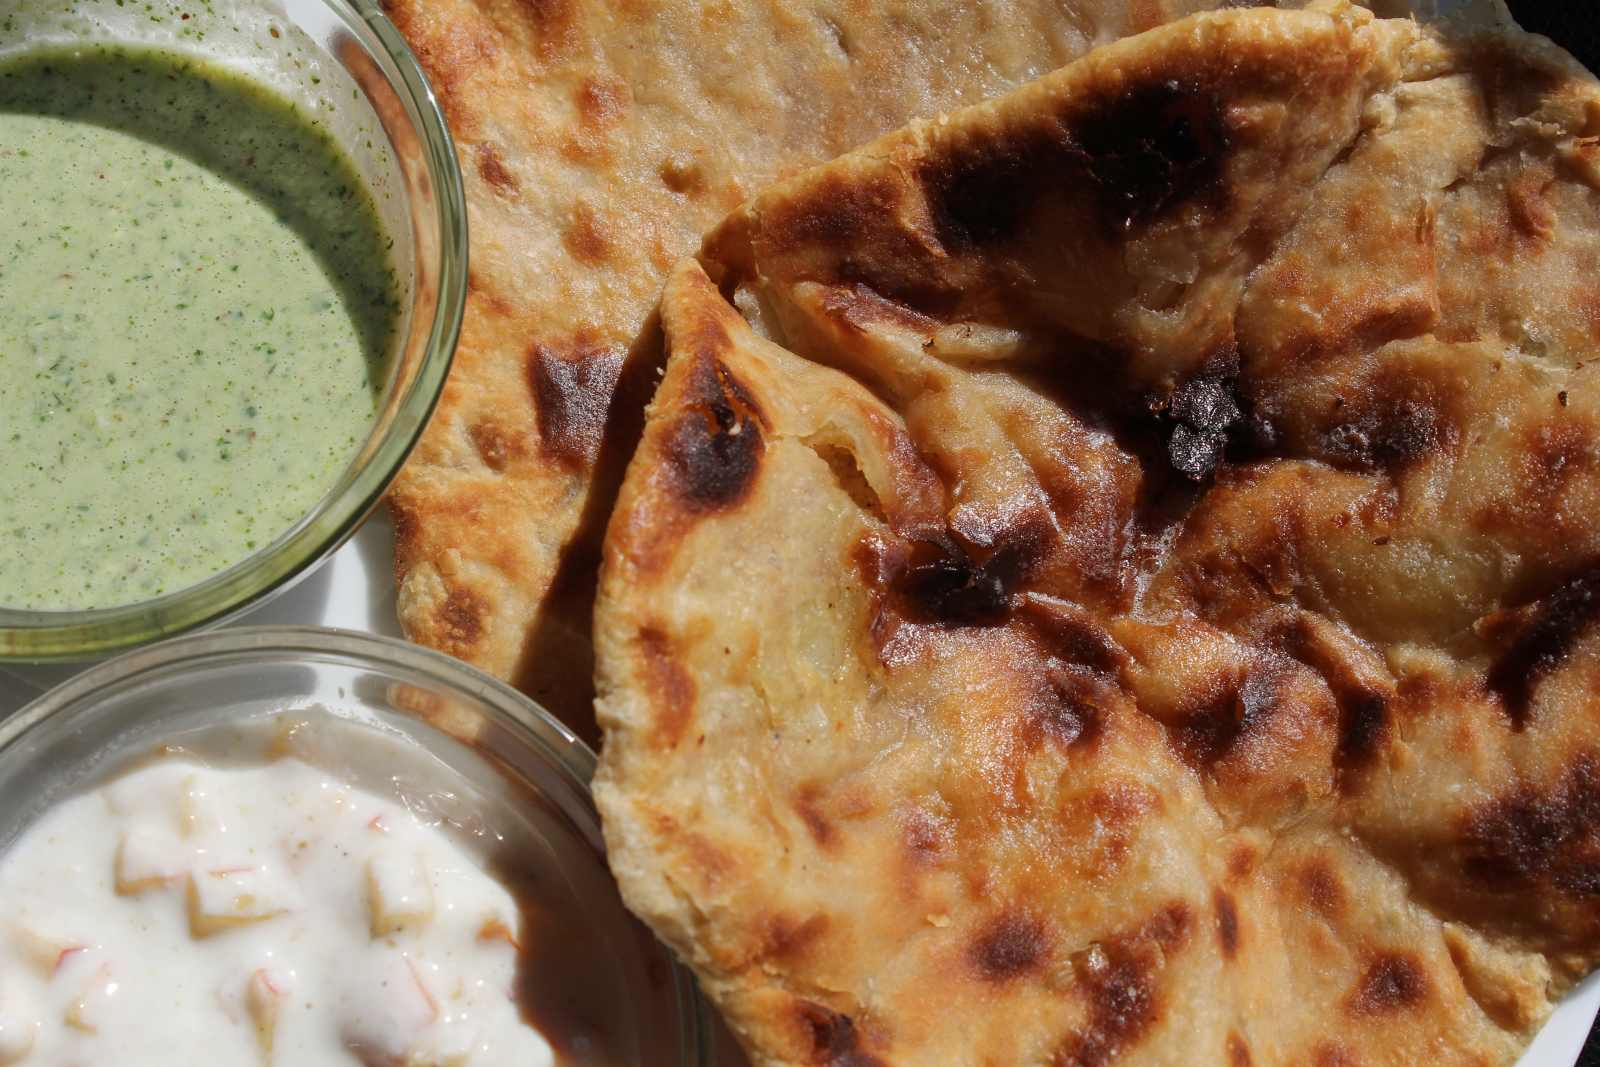 Stuffed Masala Aloo Naan Recipe Made Without Oven